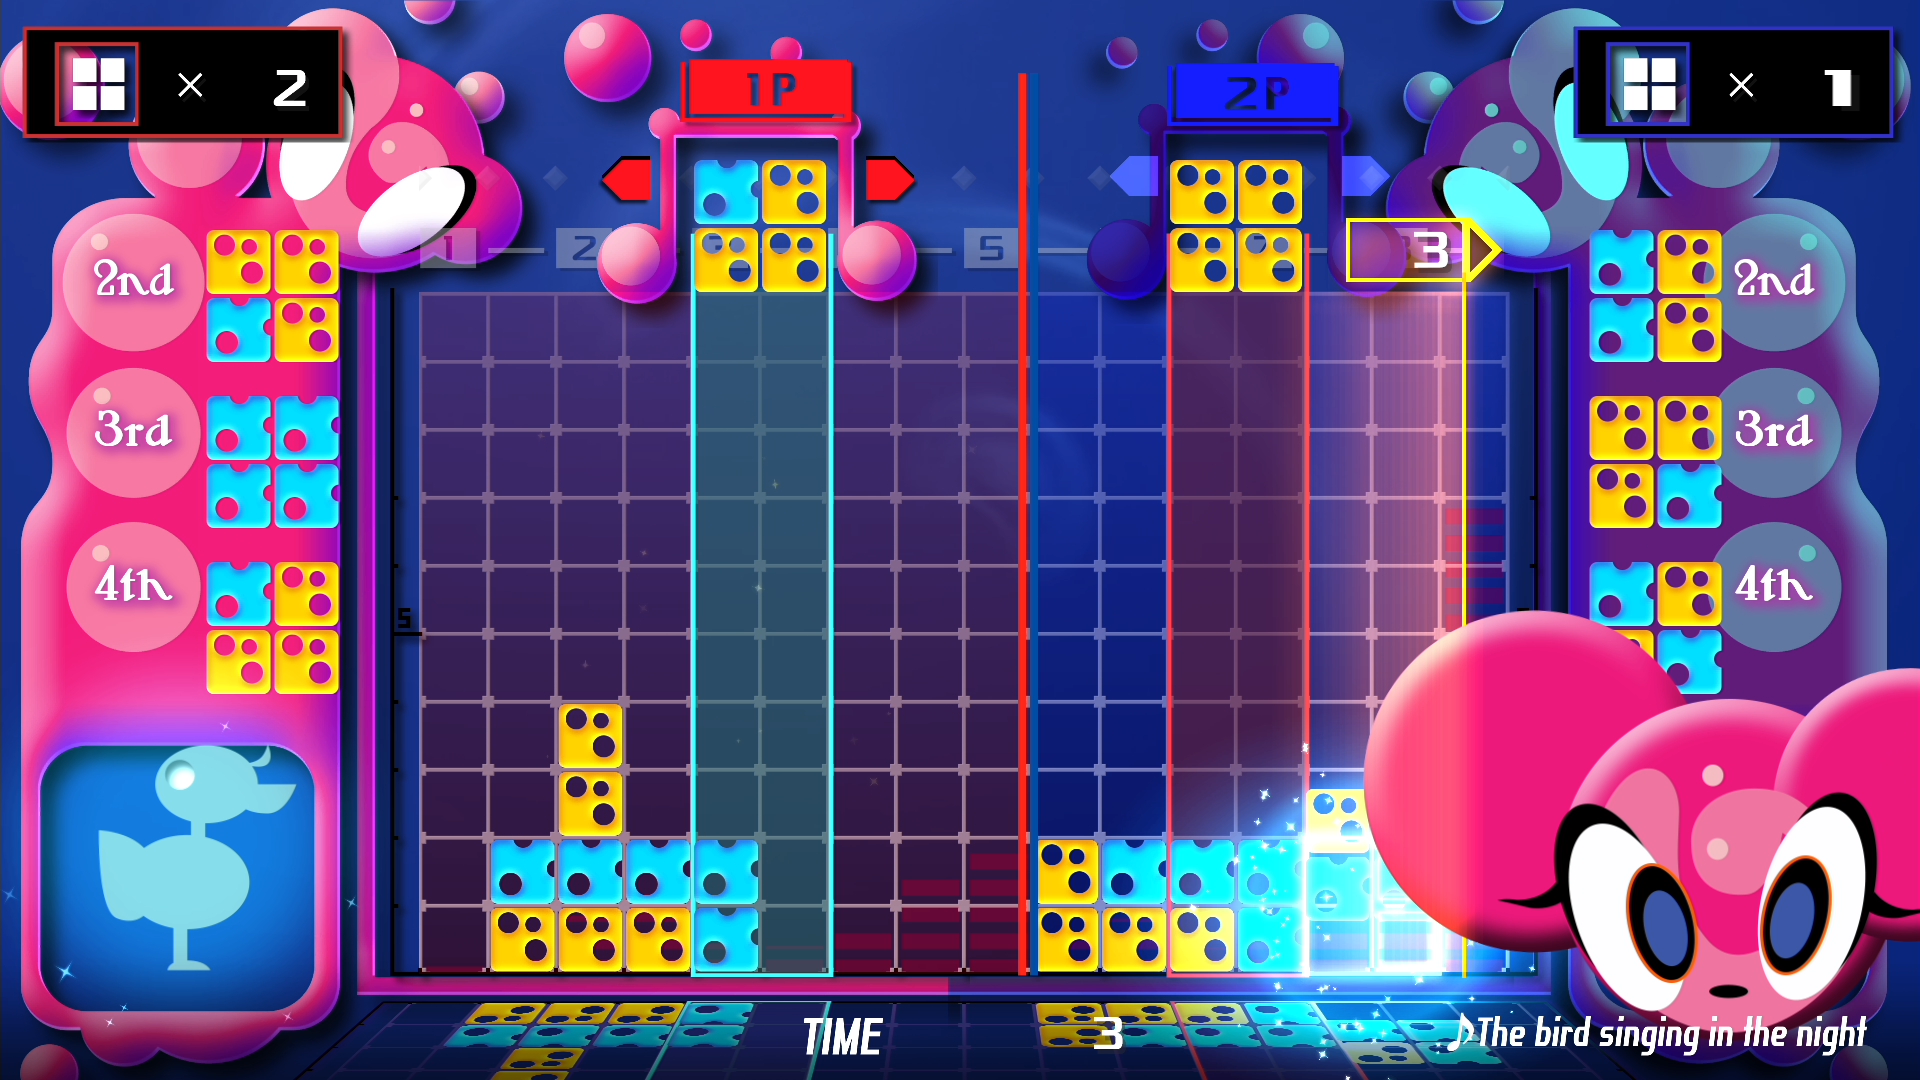 Lumines Remastered announced for PS4, Xbox One, Switch, and PC